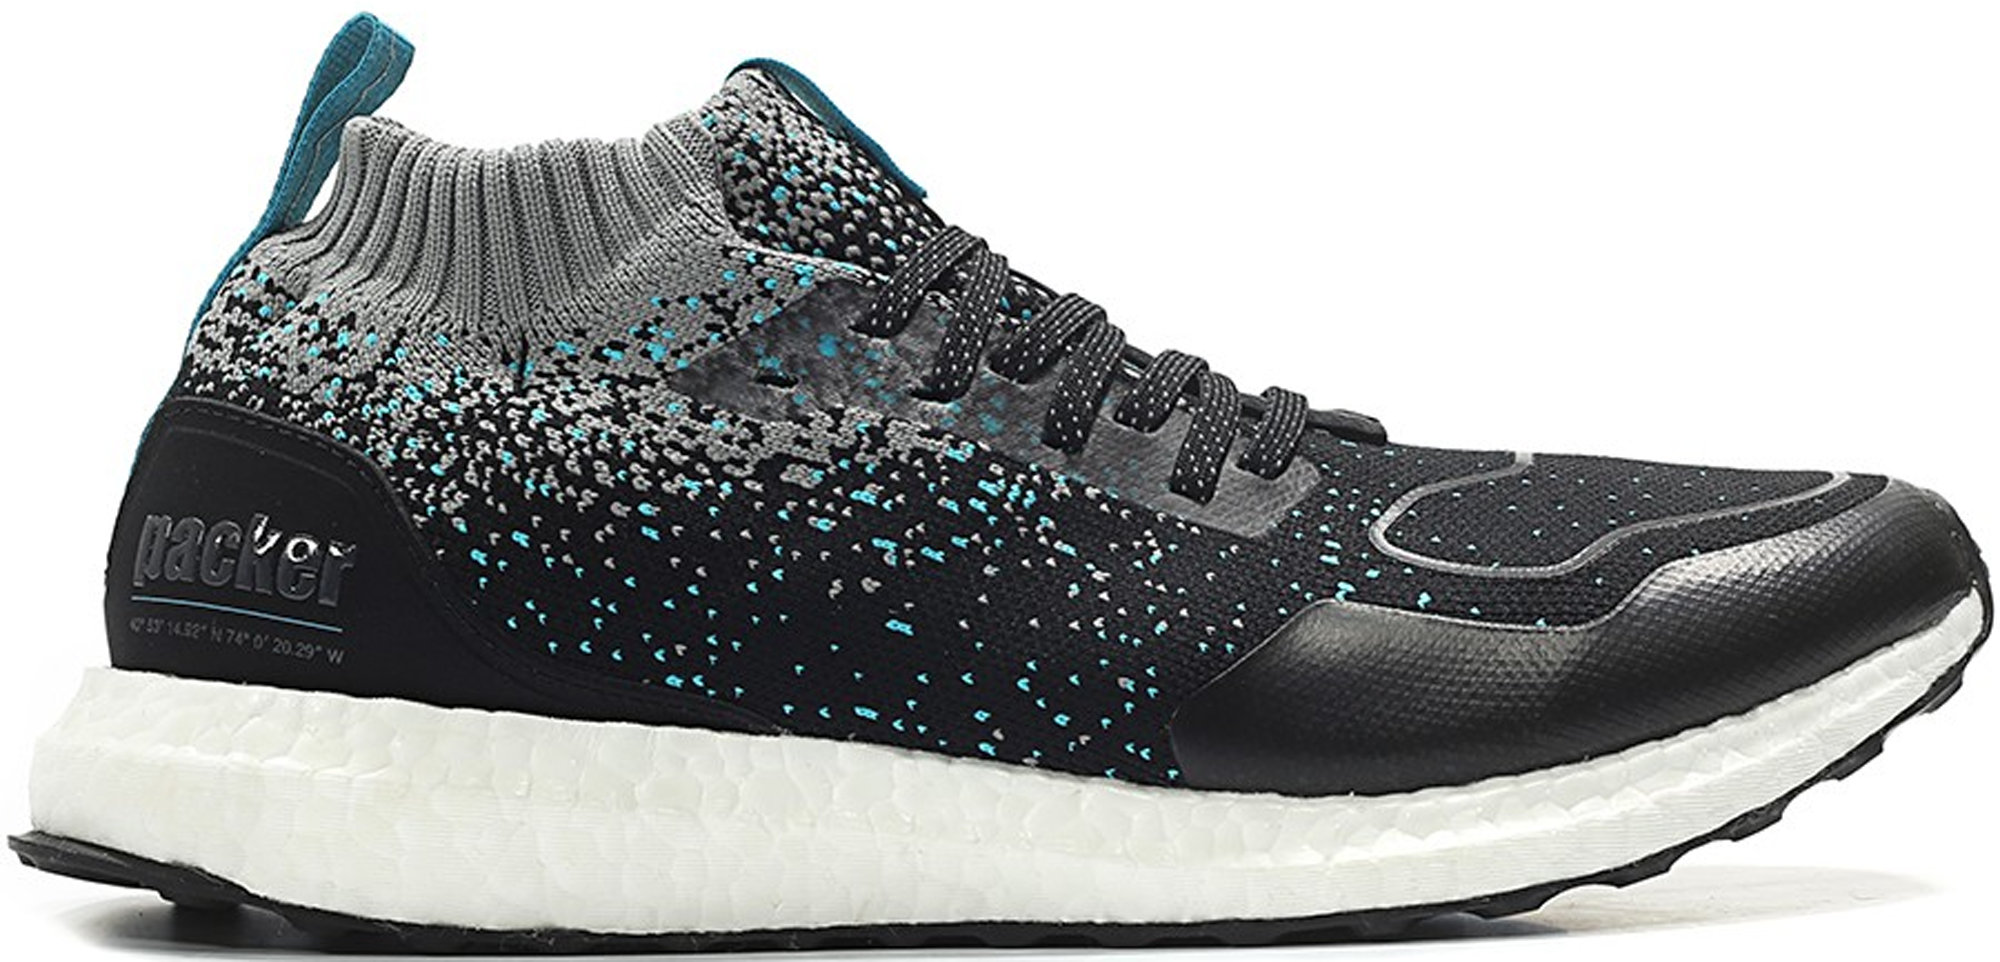 half off 2fae5 f9e16 Packer Shoes x Solebox x adidas Ultra Boost Mid Silfra Rift